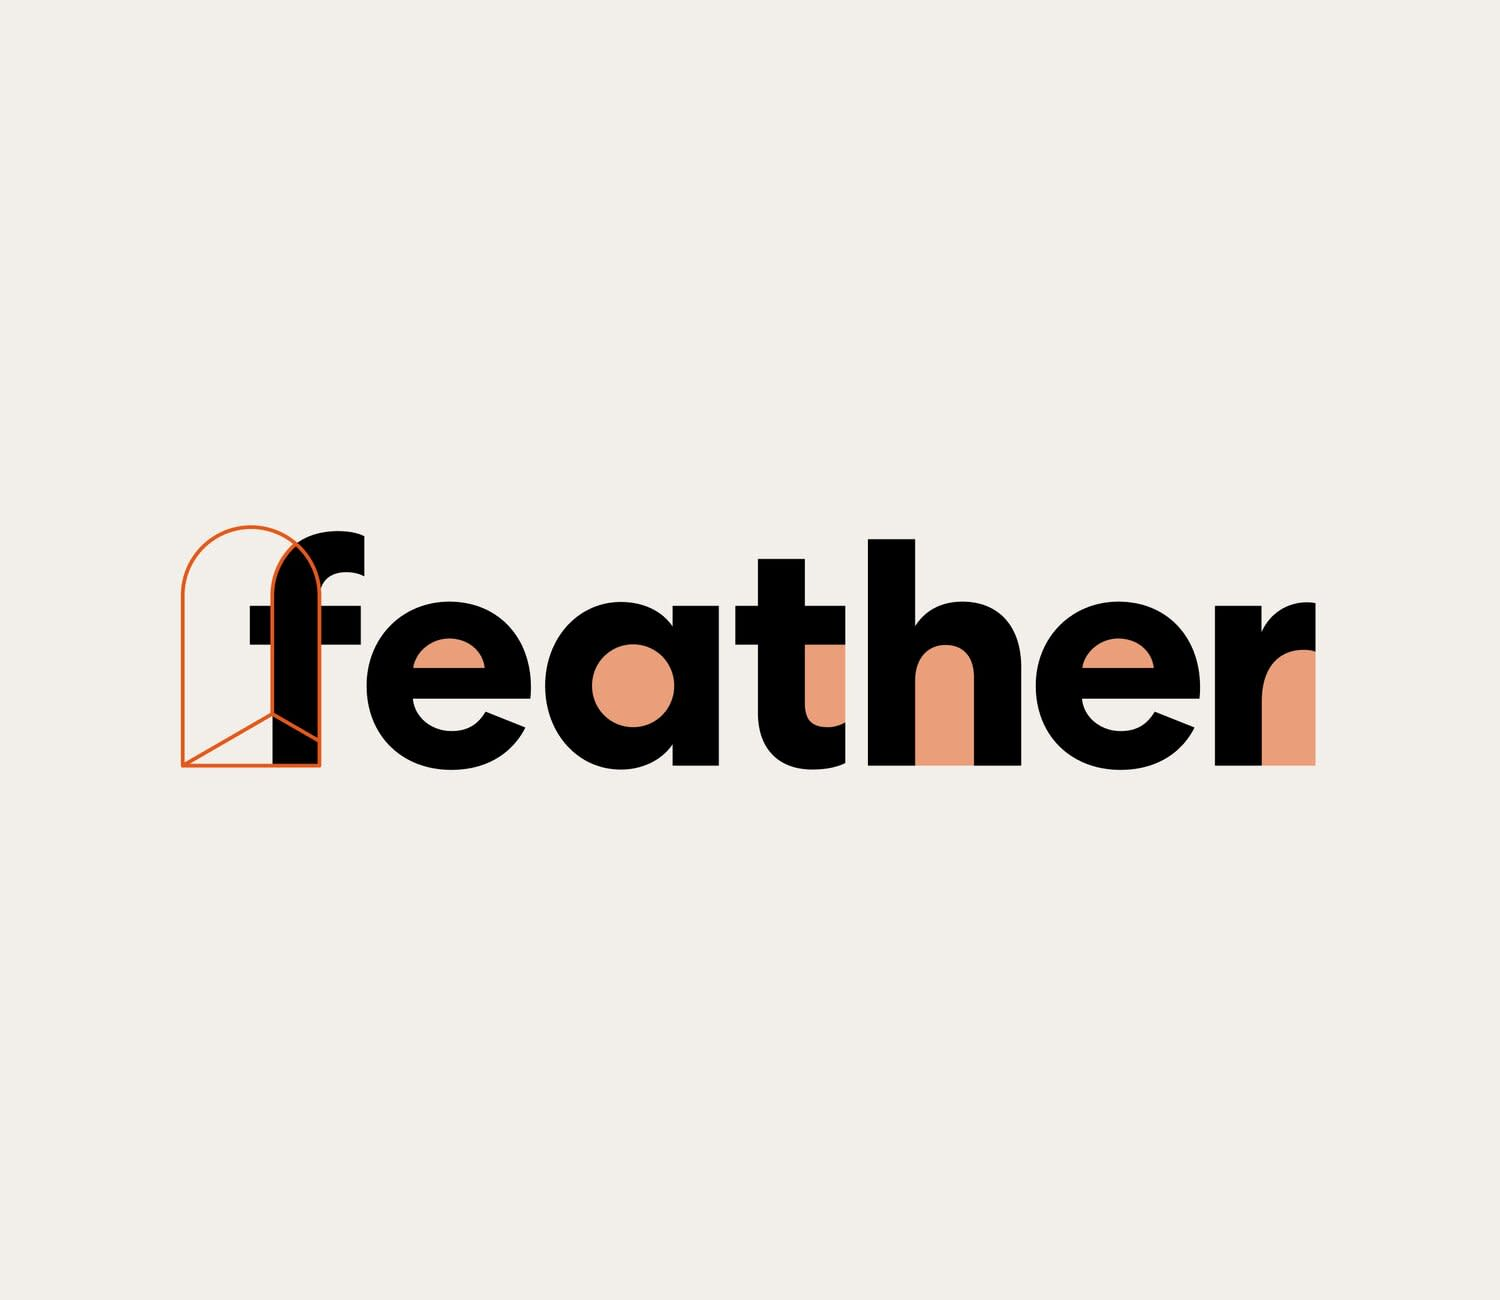 Feather : rebrand